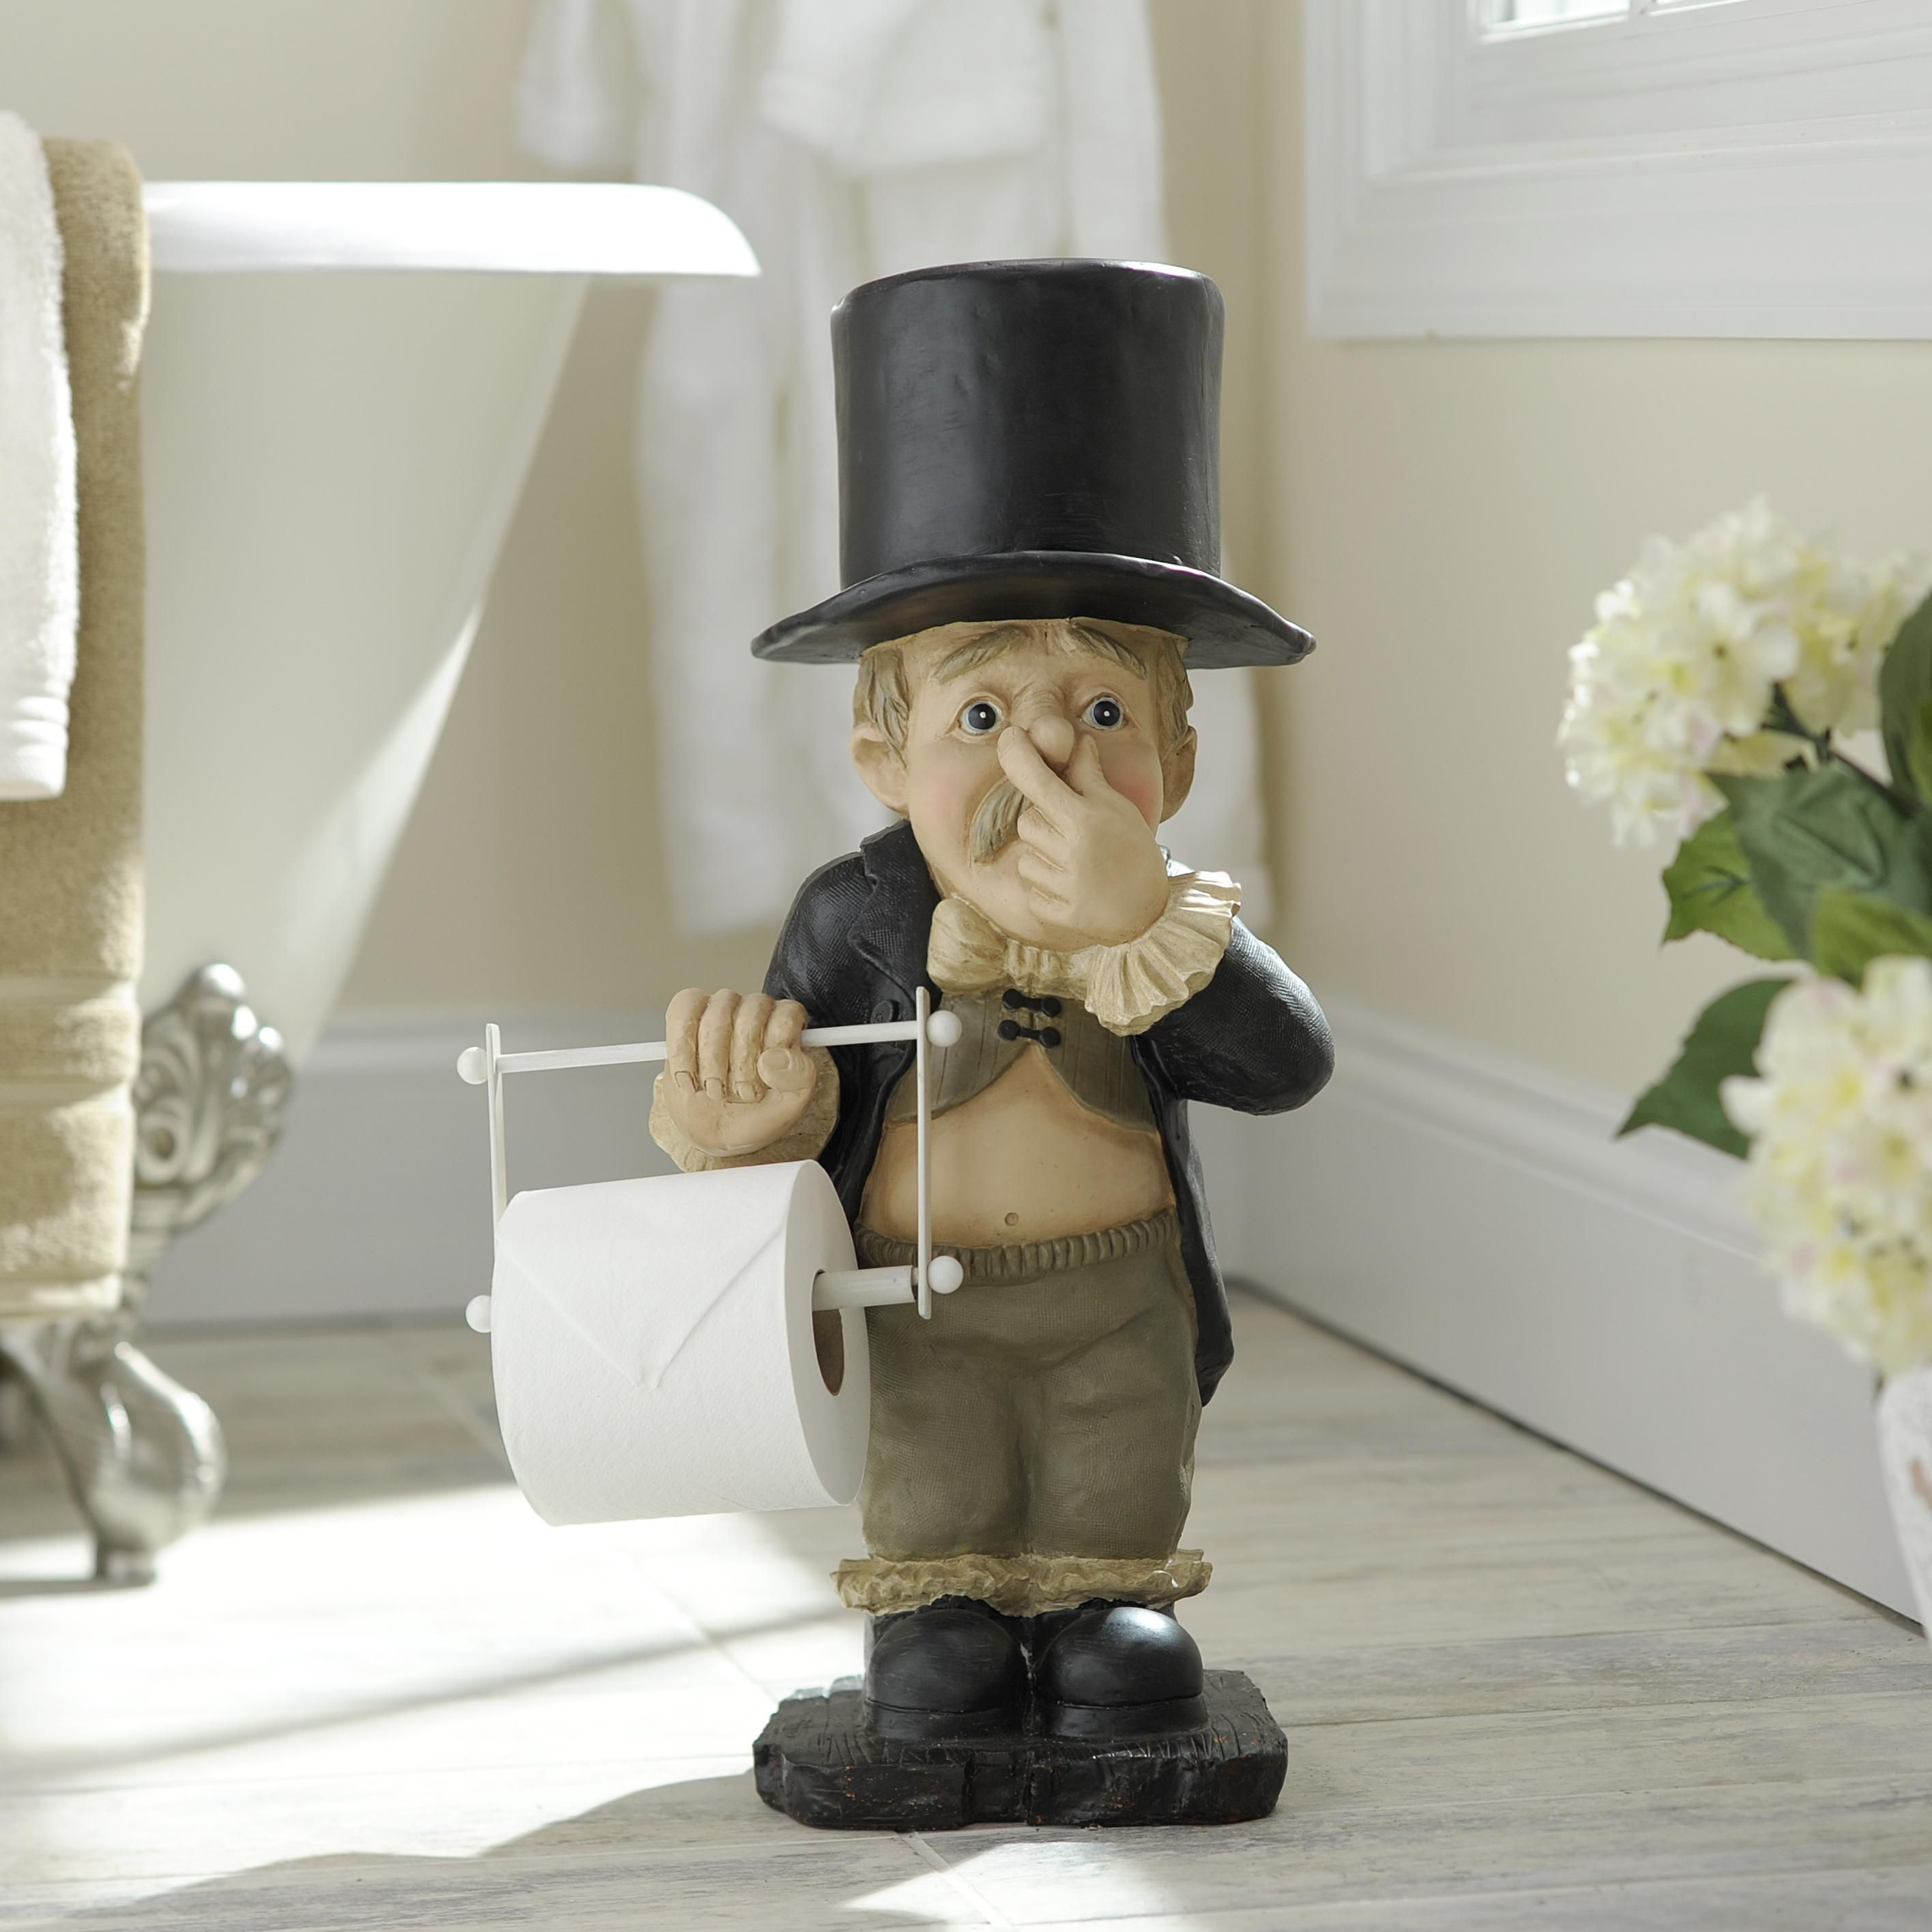 Stinky Butler Toilet Paper Holder Toilet Paper Toilet and Bath